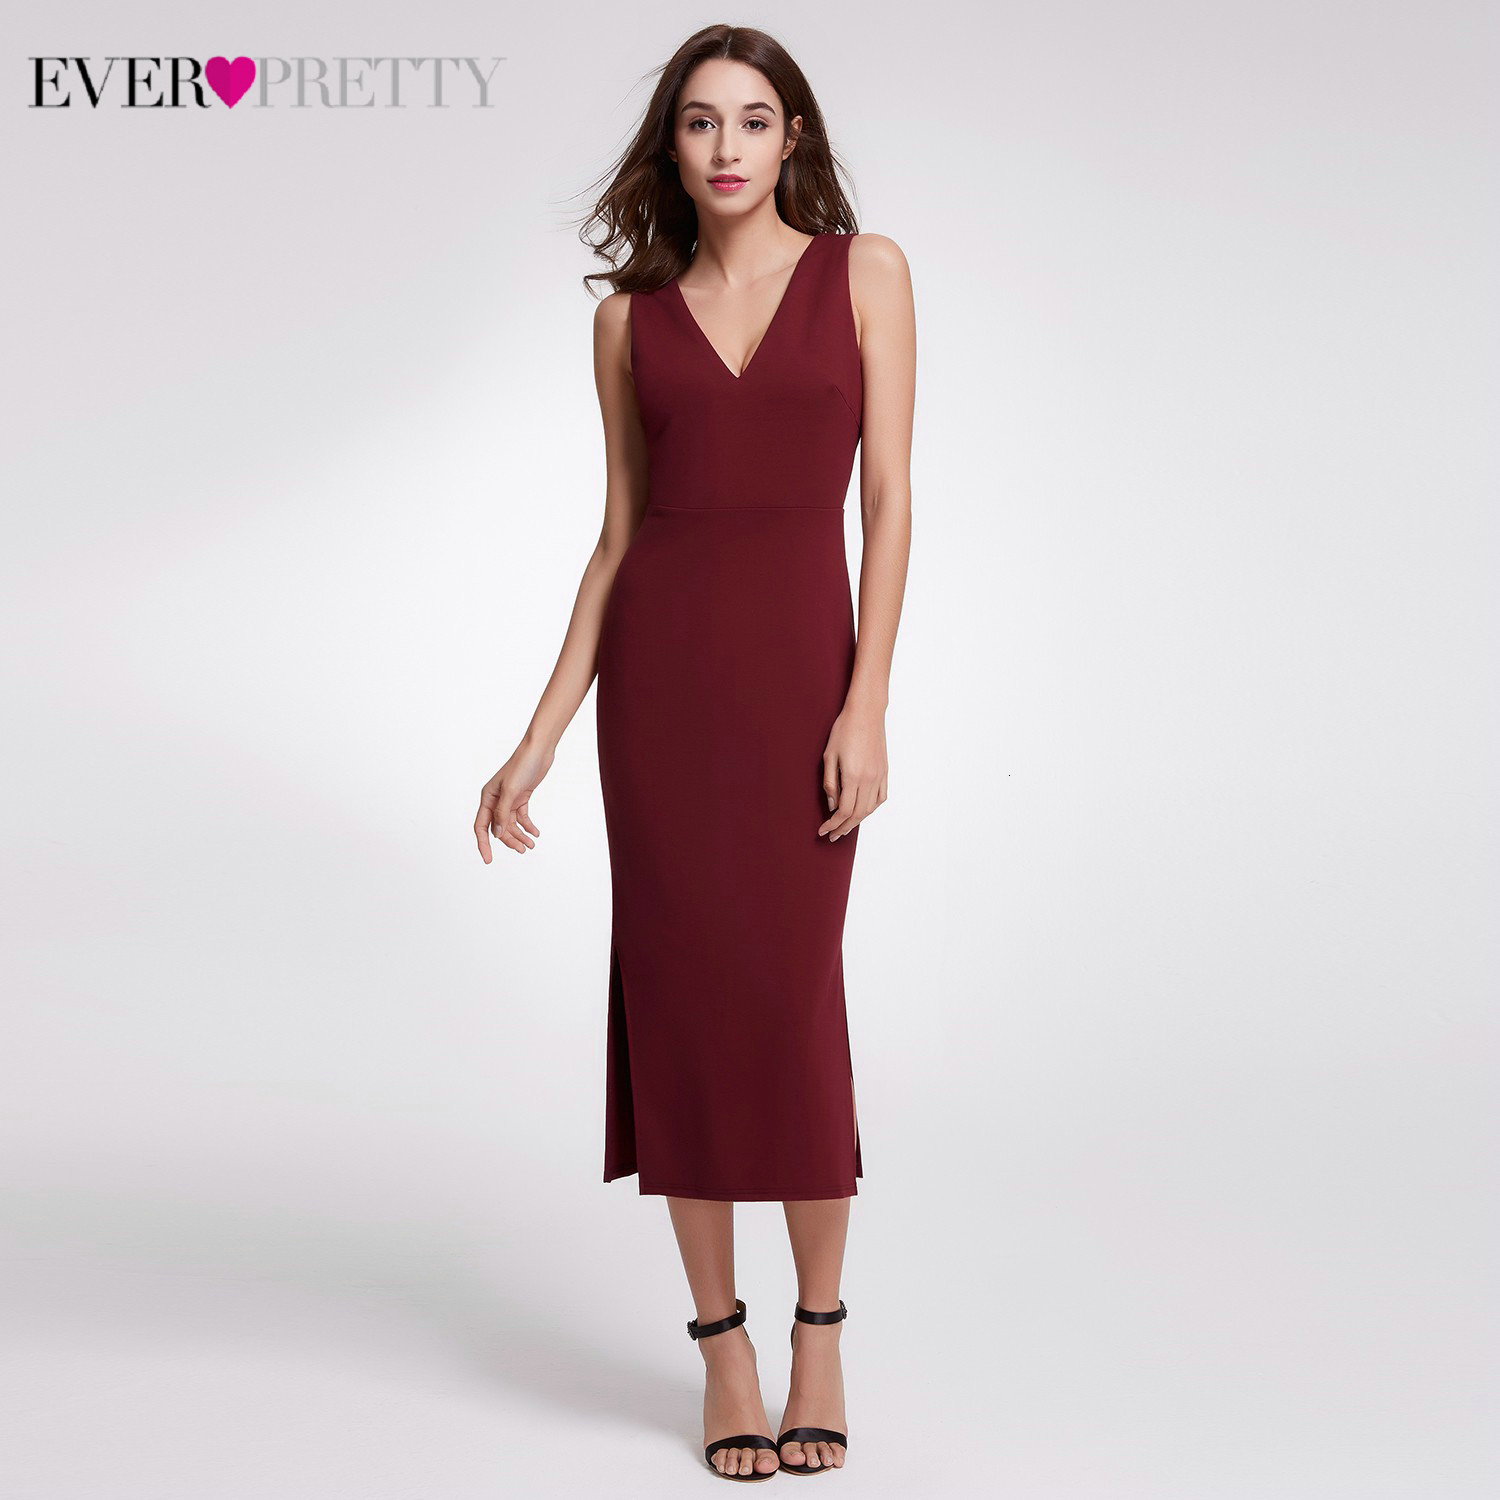 Burgundy Cocktail Dresses Ever Pretty Mermaid Deep V-Neck Sleeveless Straight Sexy Evening Party Gowns Vestidos De Fiesta 2019